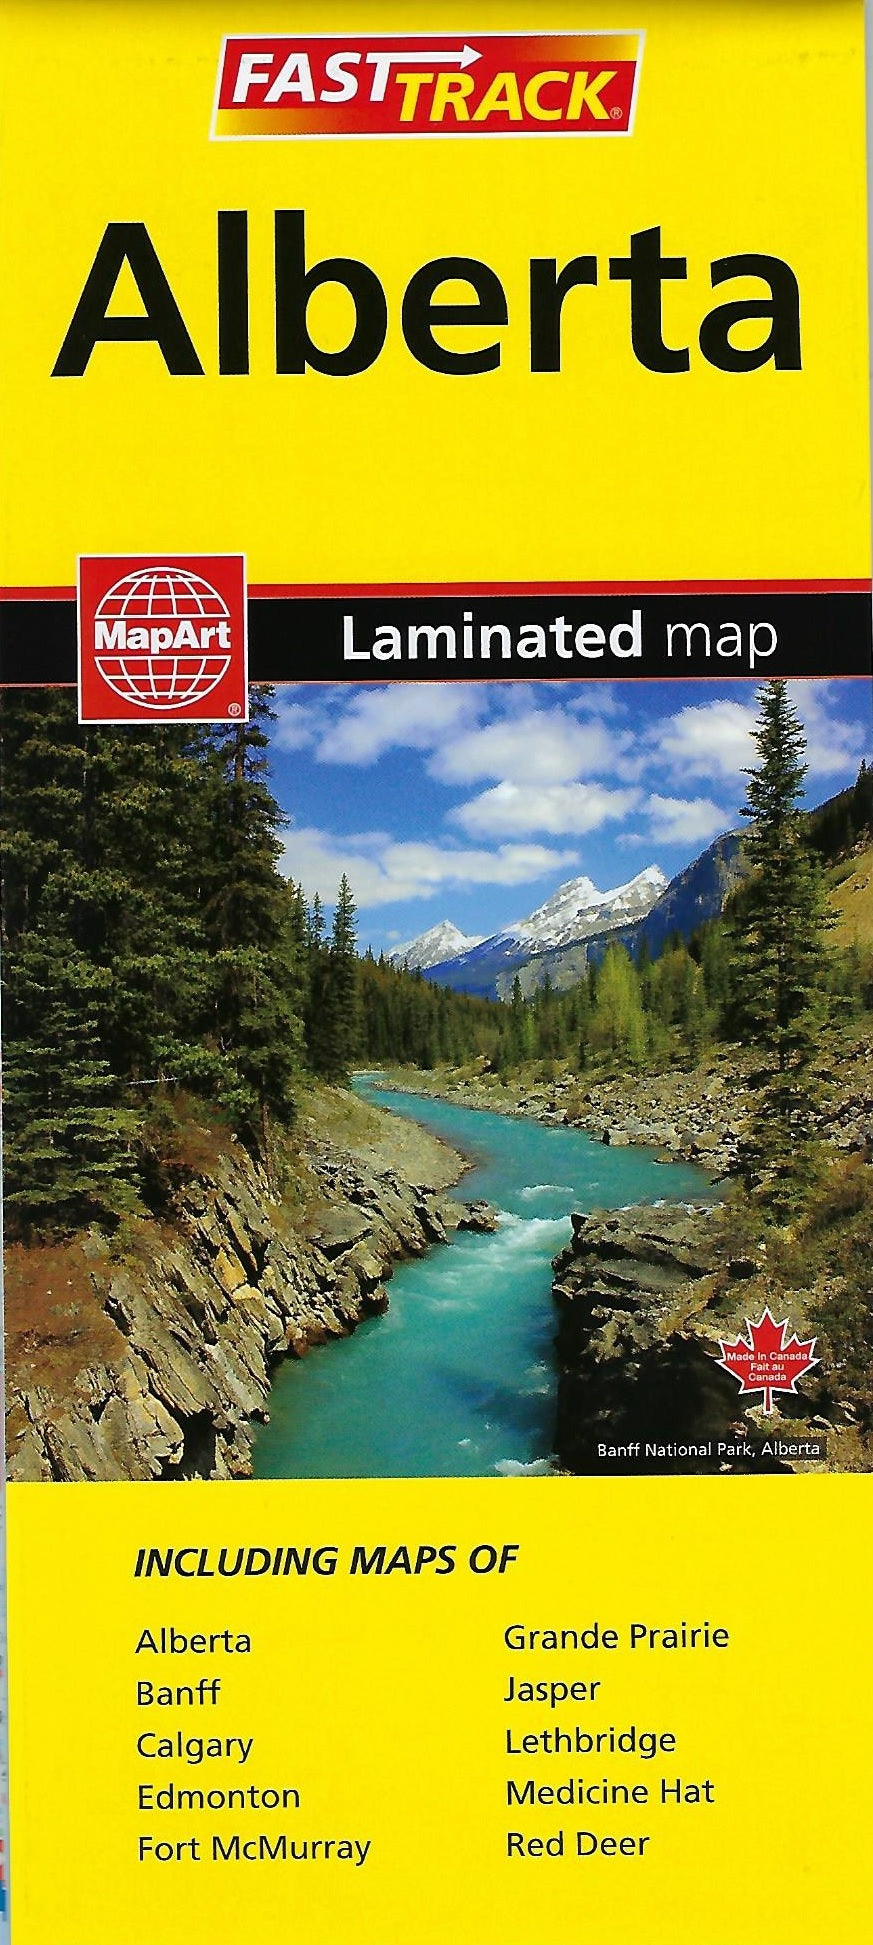 Alberta Fast Track Laminated CCC Map